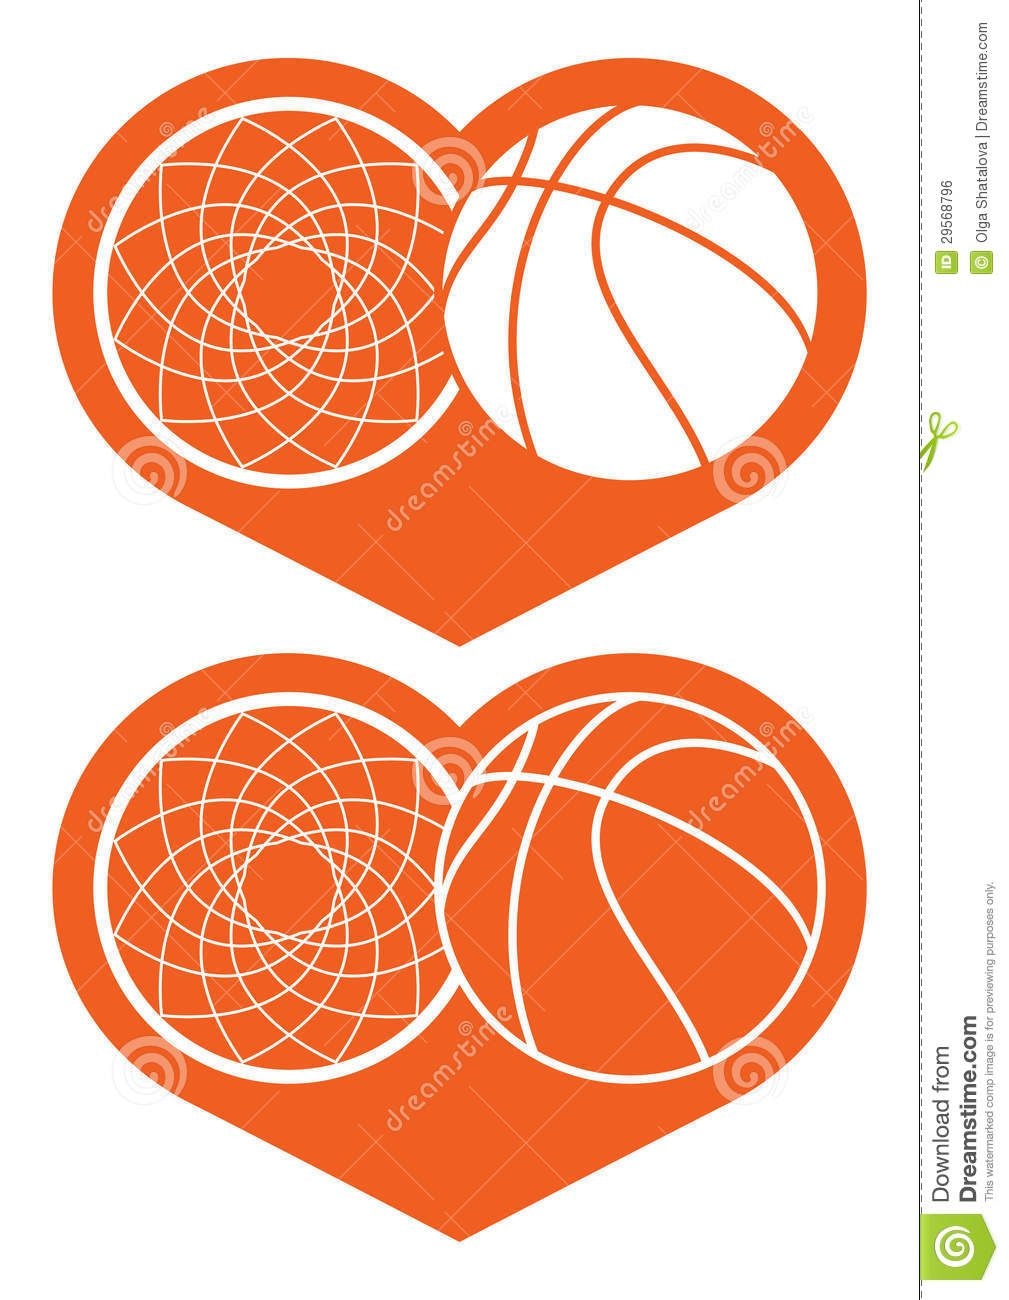 Basketball hoop and ball in heart royalty free stock image image shopping for basketball gear and equipment get ready for your next game with our wide selection of basketball gear including basketball shoesclothing and biocorpaavc Choice Image